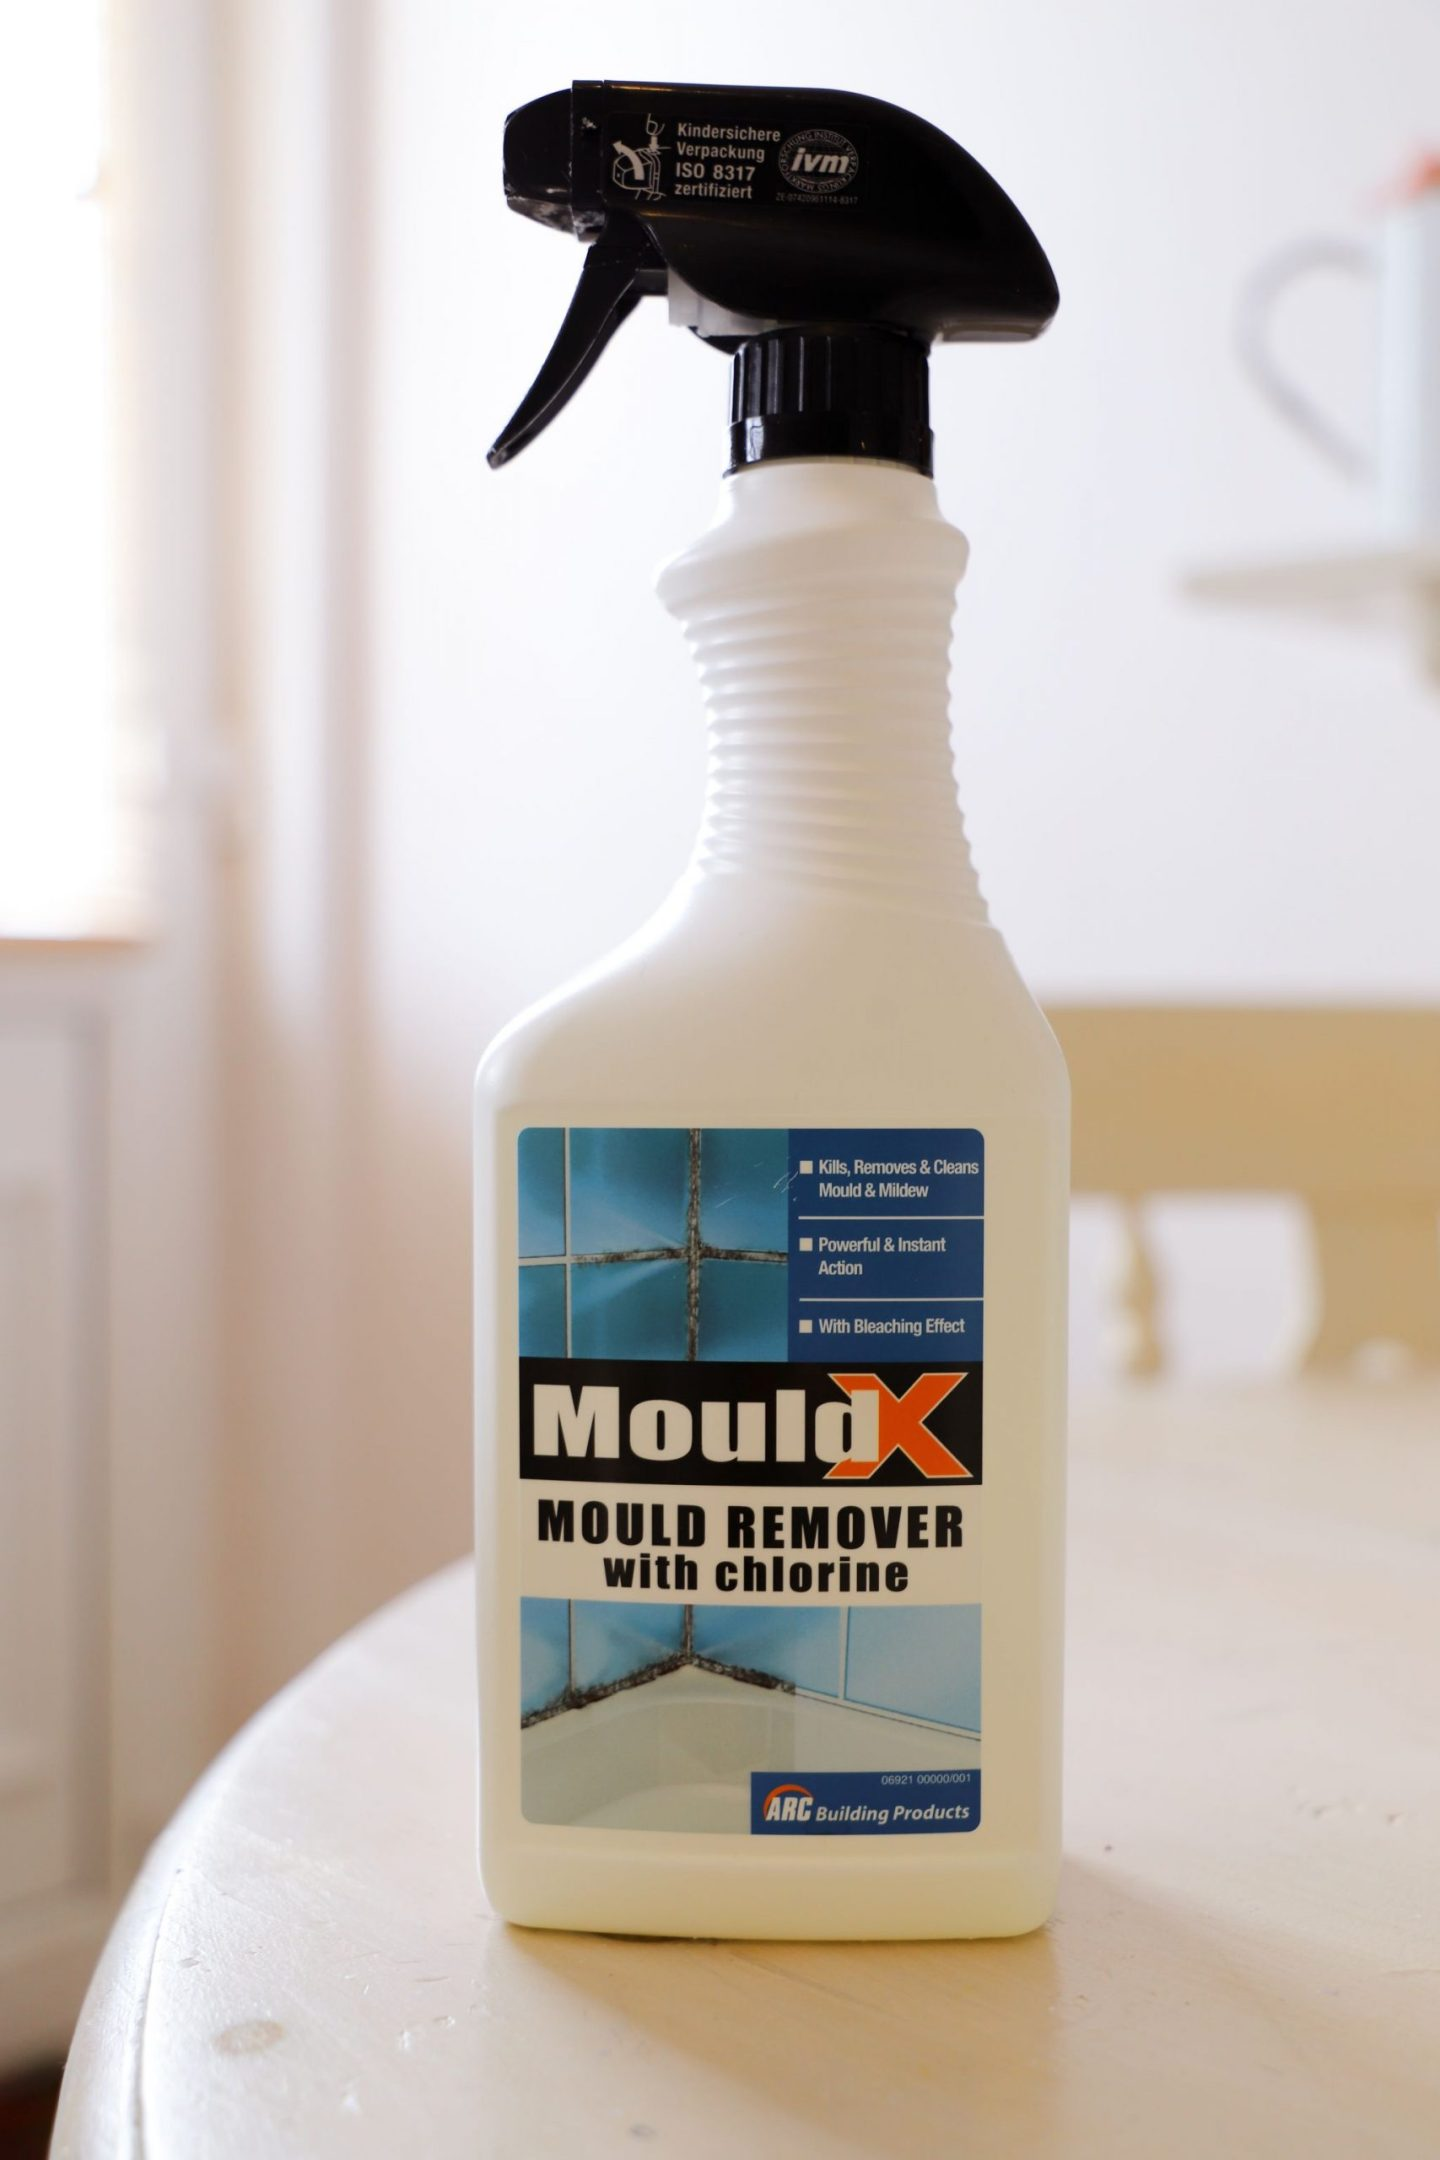 MouldX spray cleaner